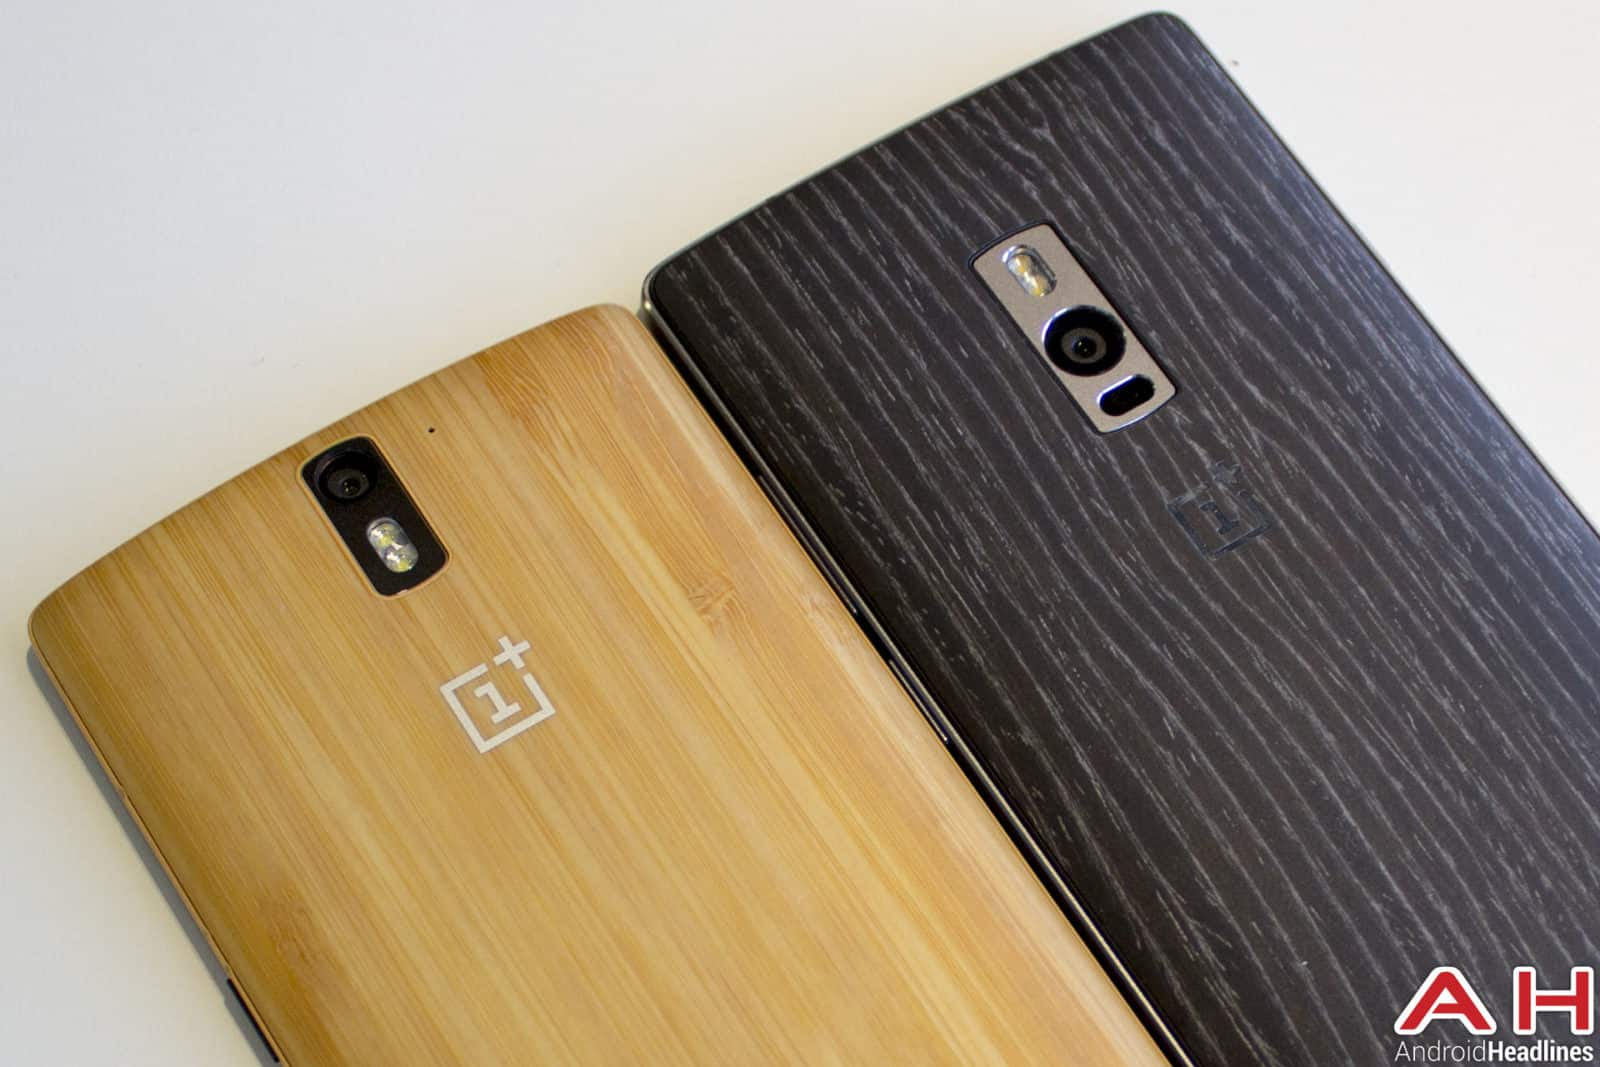 oneplus-one-vs-oneplus-2-camera